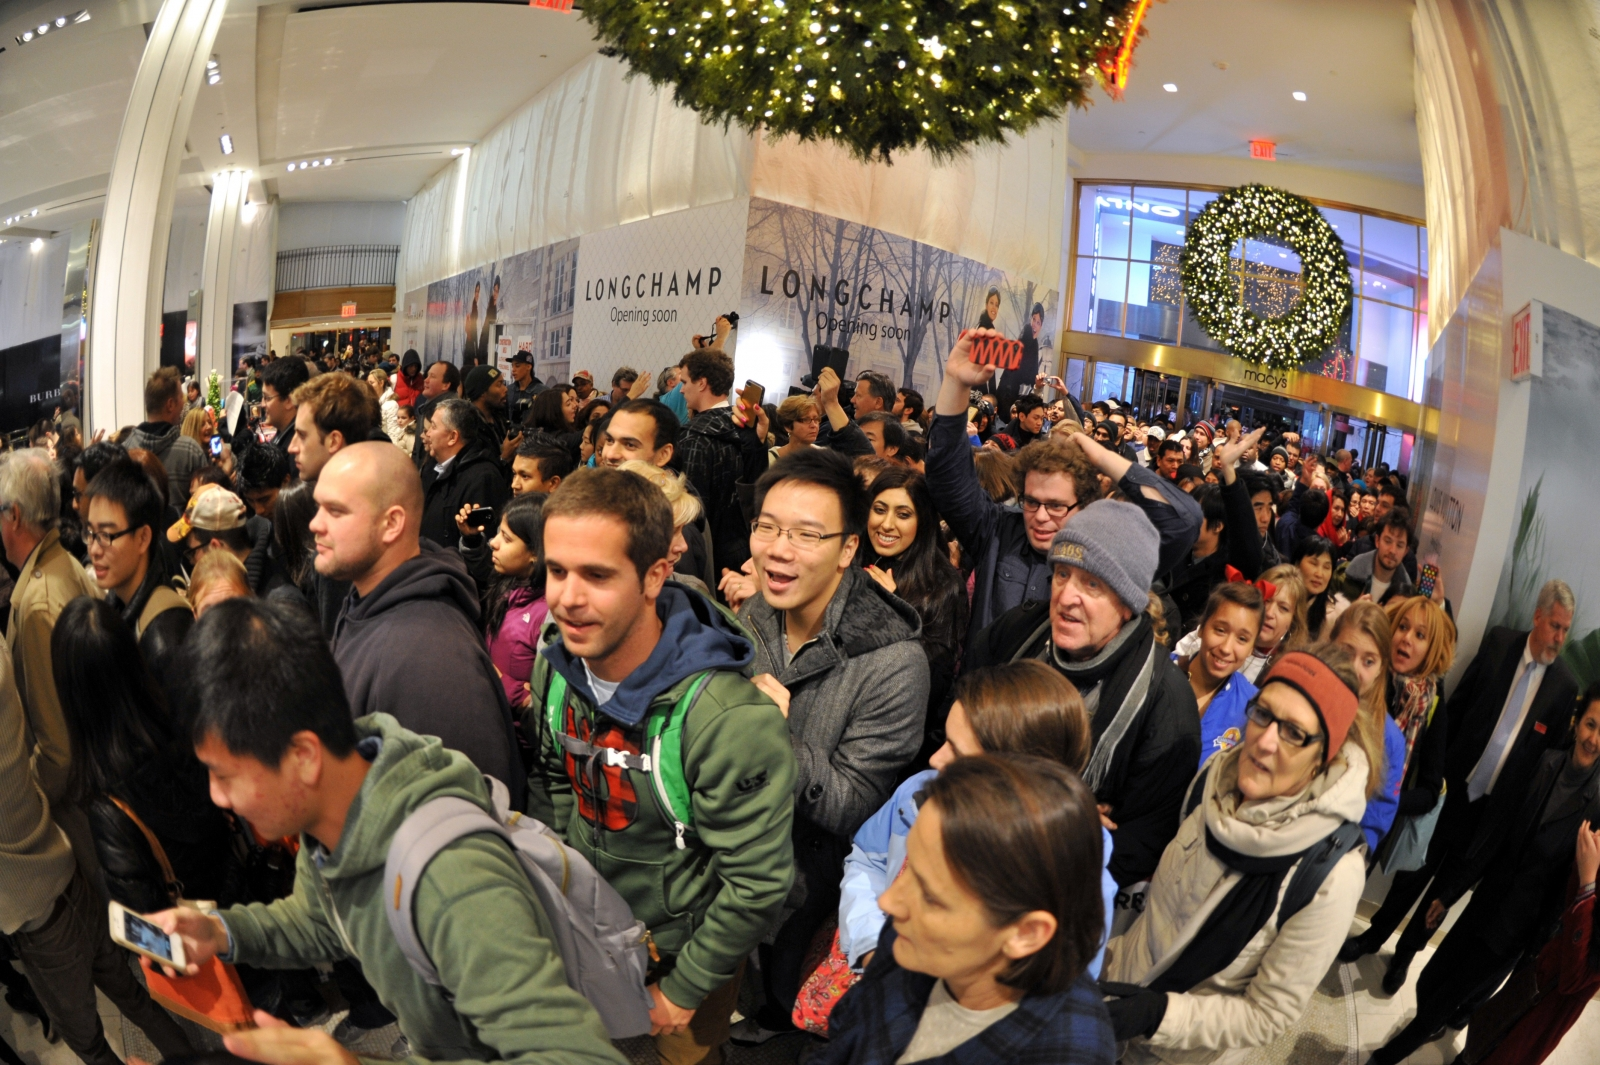 Black Friday 2014: Why Shopping for Deals Makes People Go Crazy